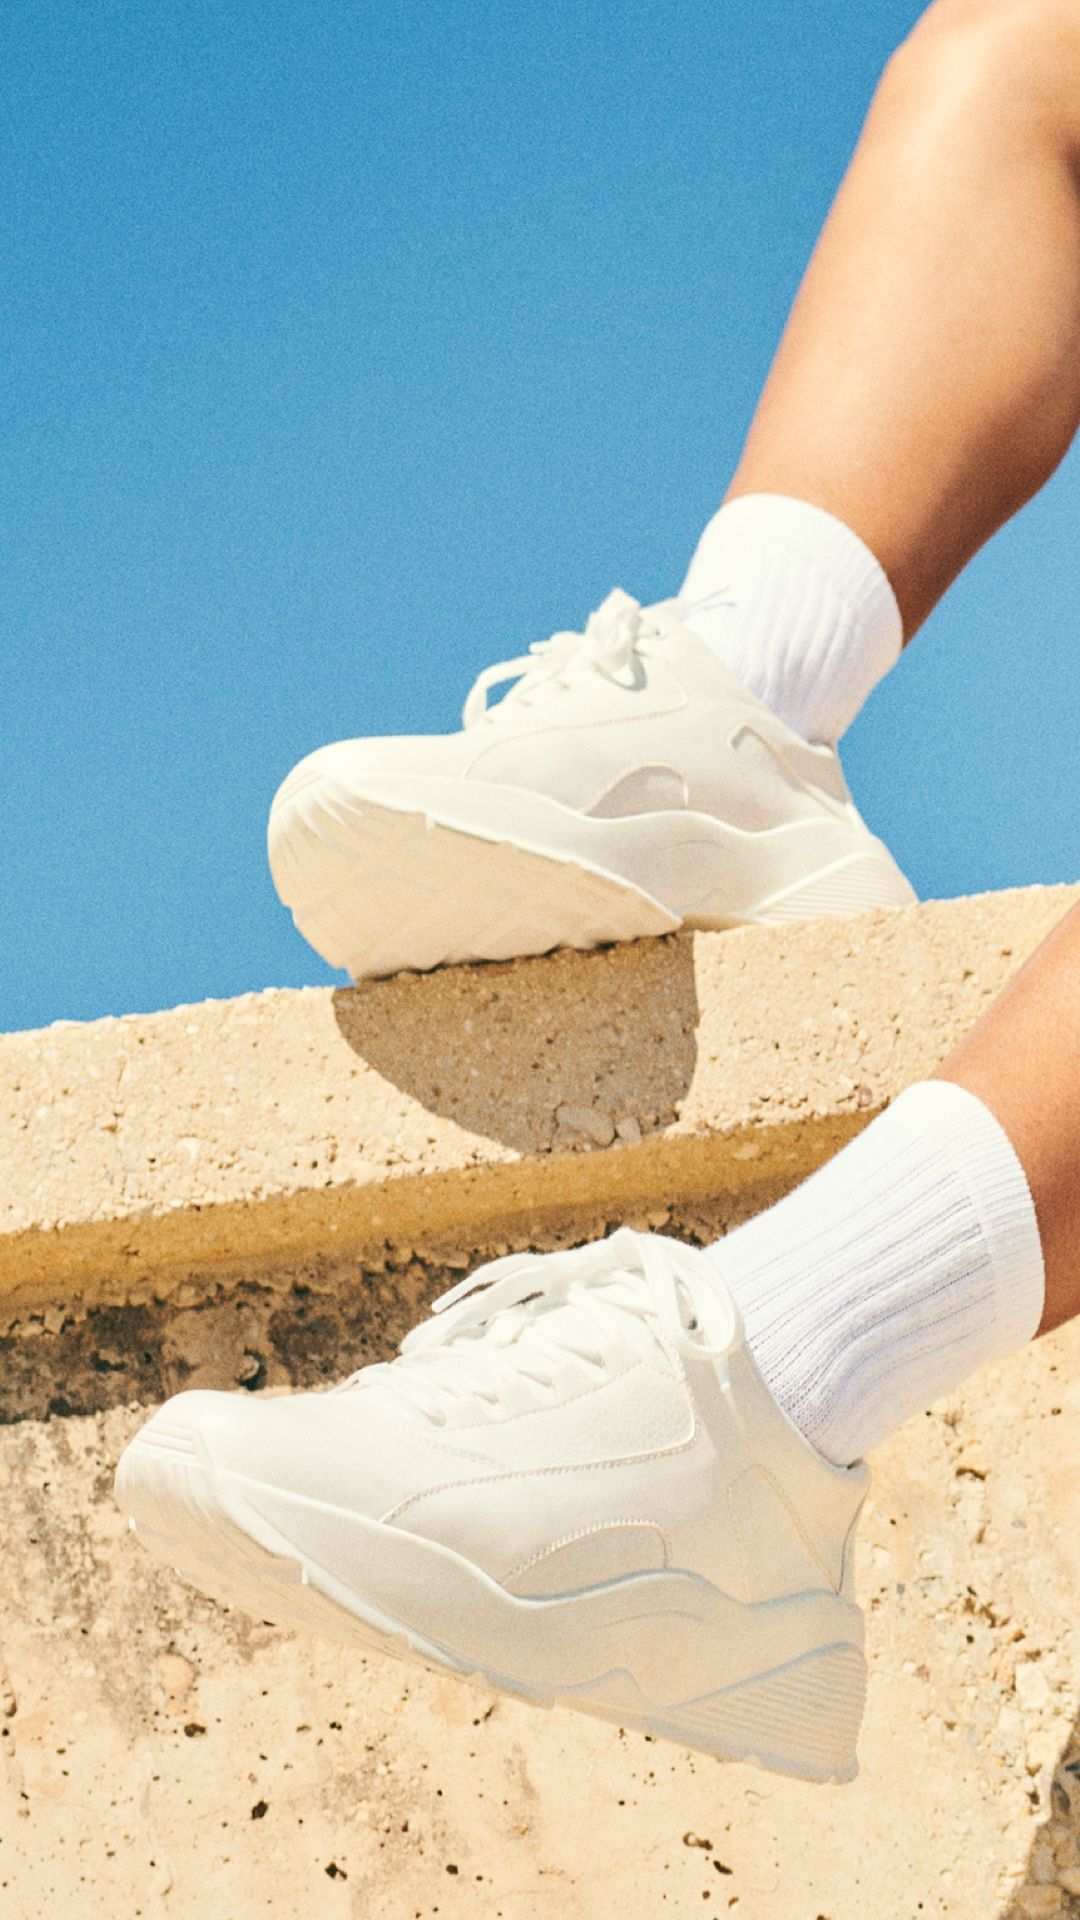 Chunky sneakers are this summer's go